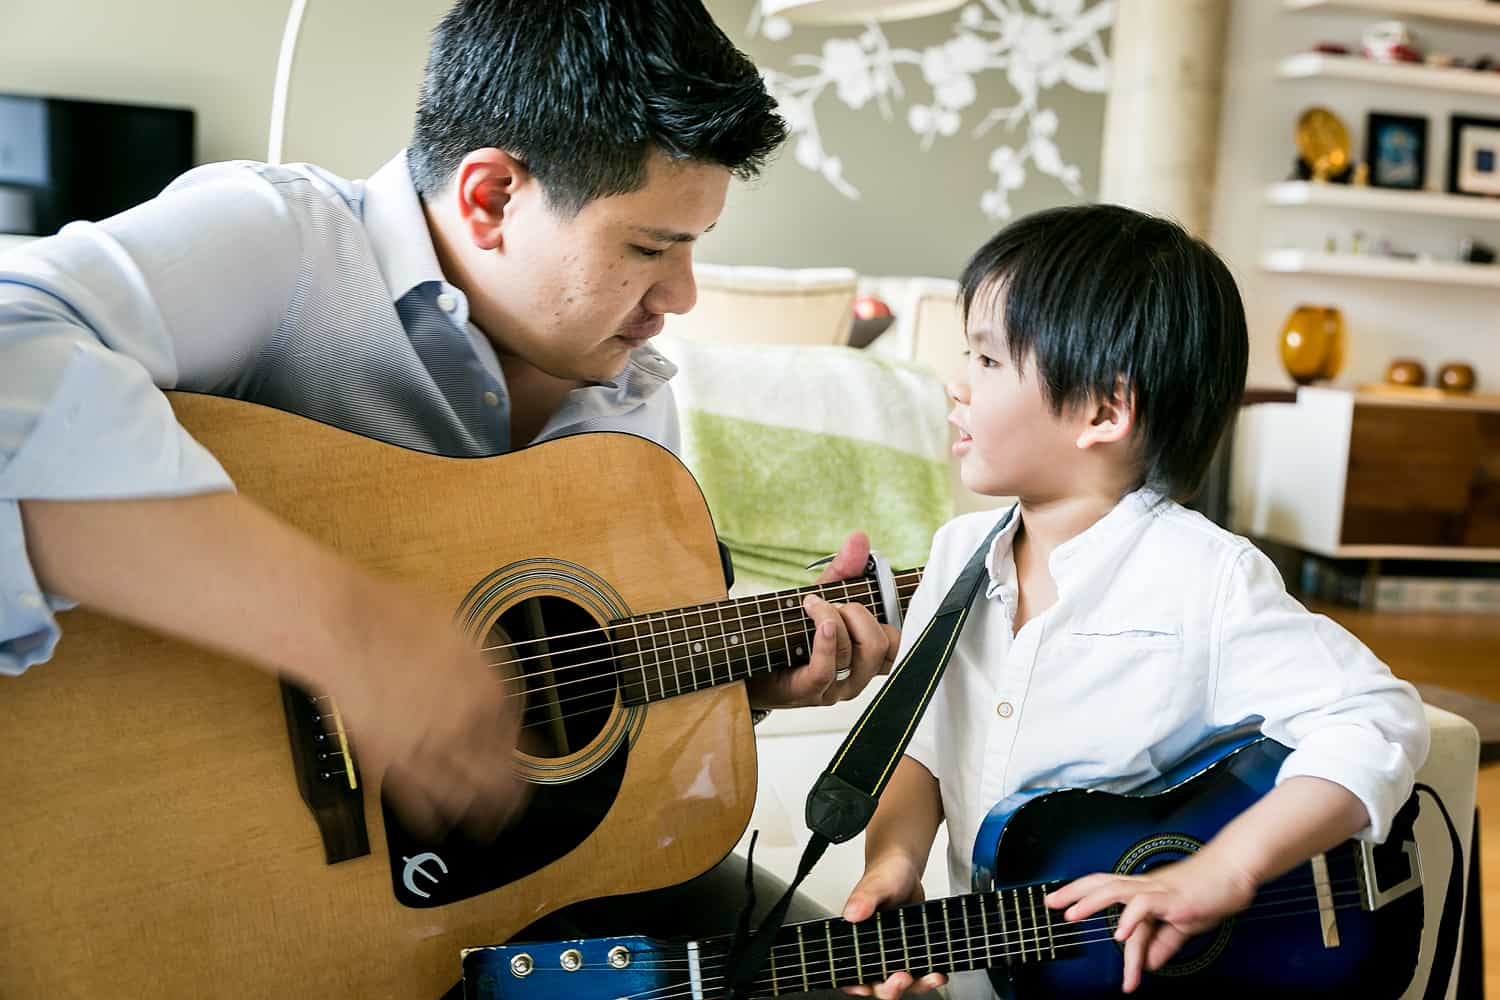 Chelsea family portrait of father and little boy playing guitar